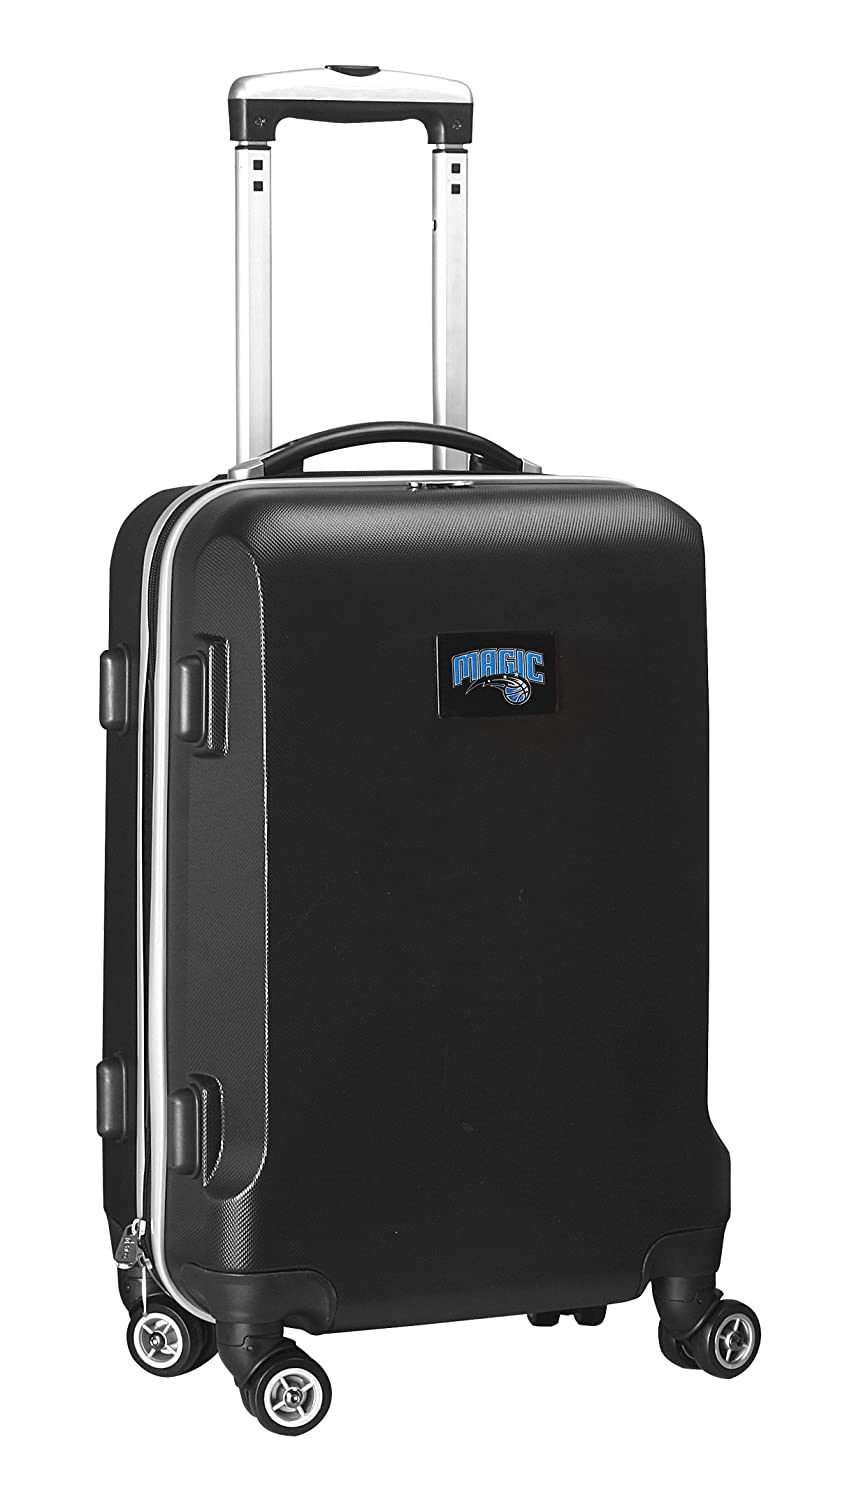 Denco Sports Luggage NBA Orlando Magic 20 Hardside Domestic Carry-On Spinner luggage